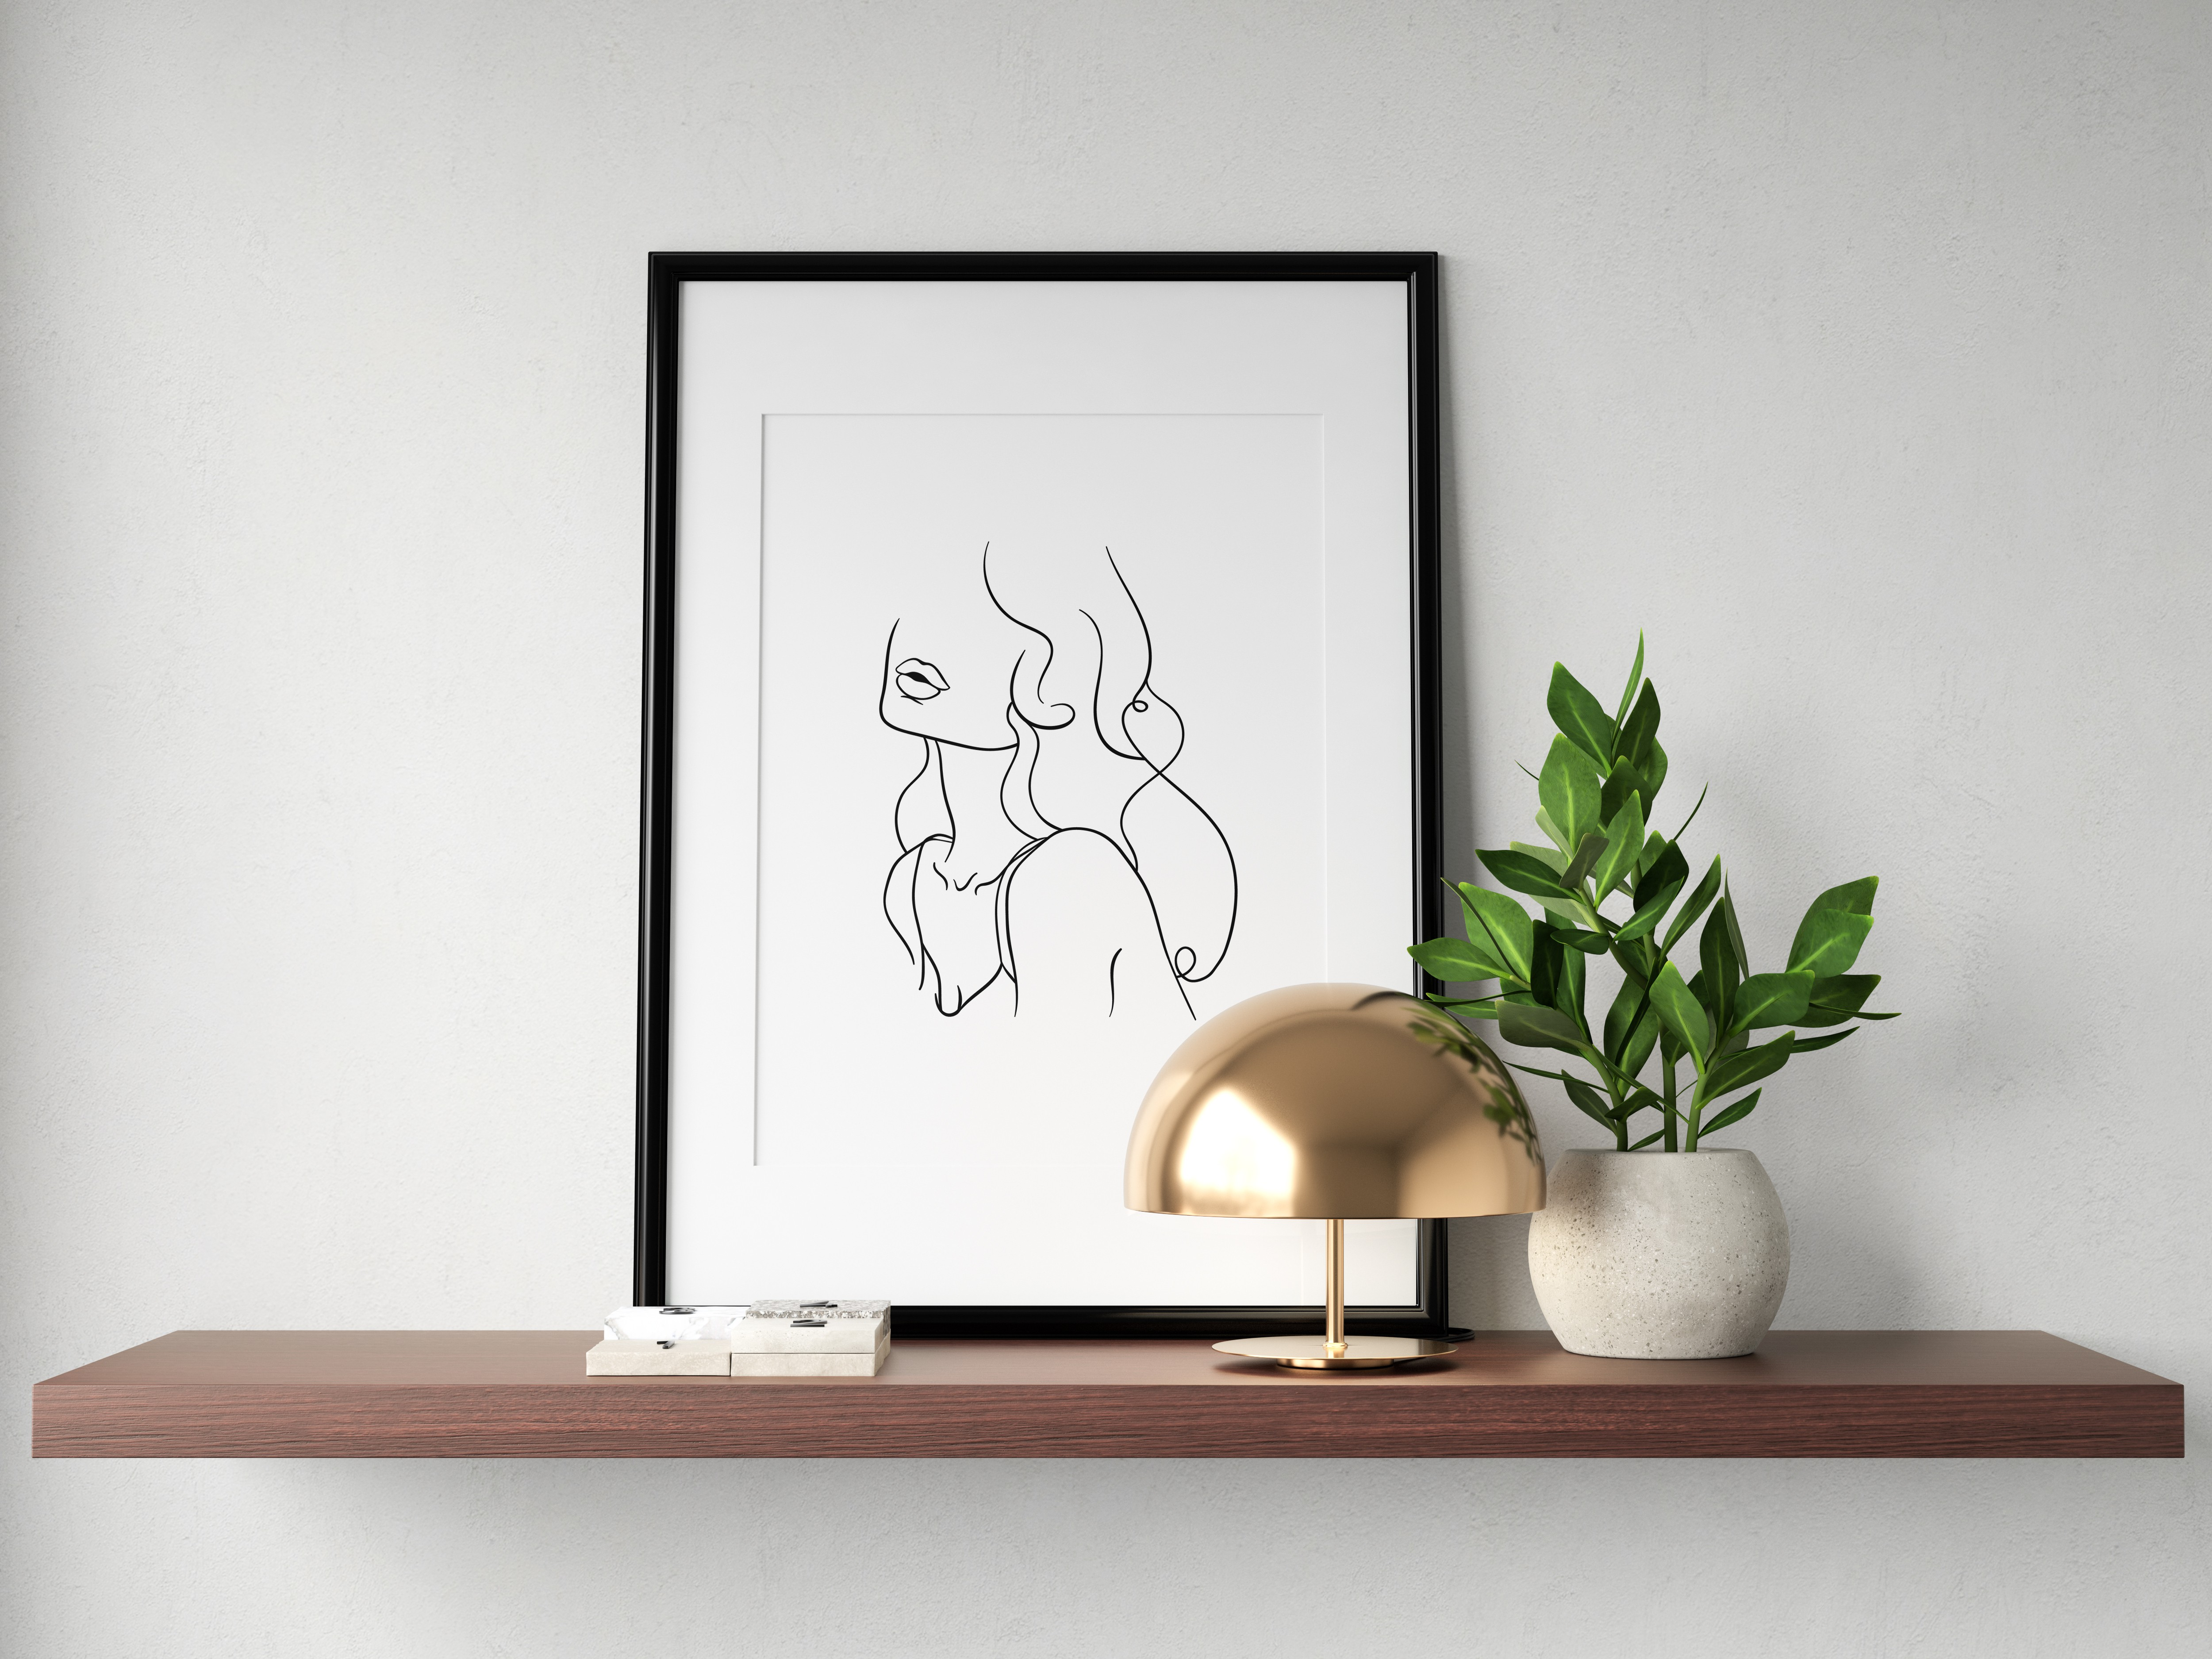 Create a set of 4 minimal line art women posters